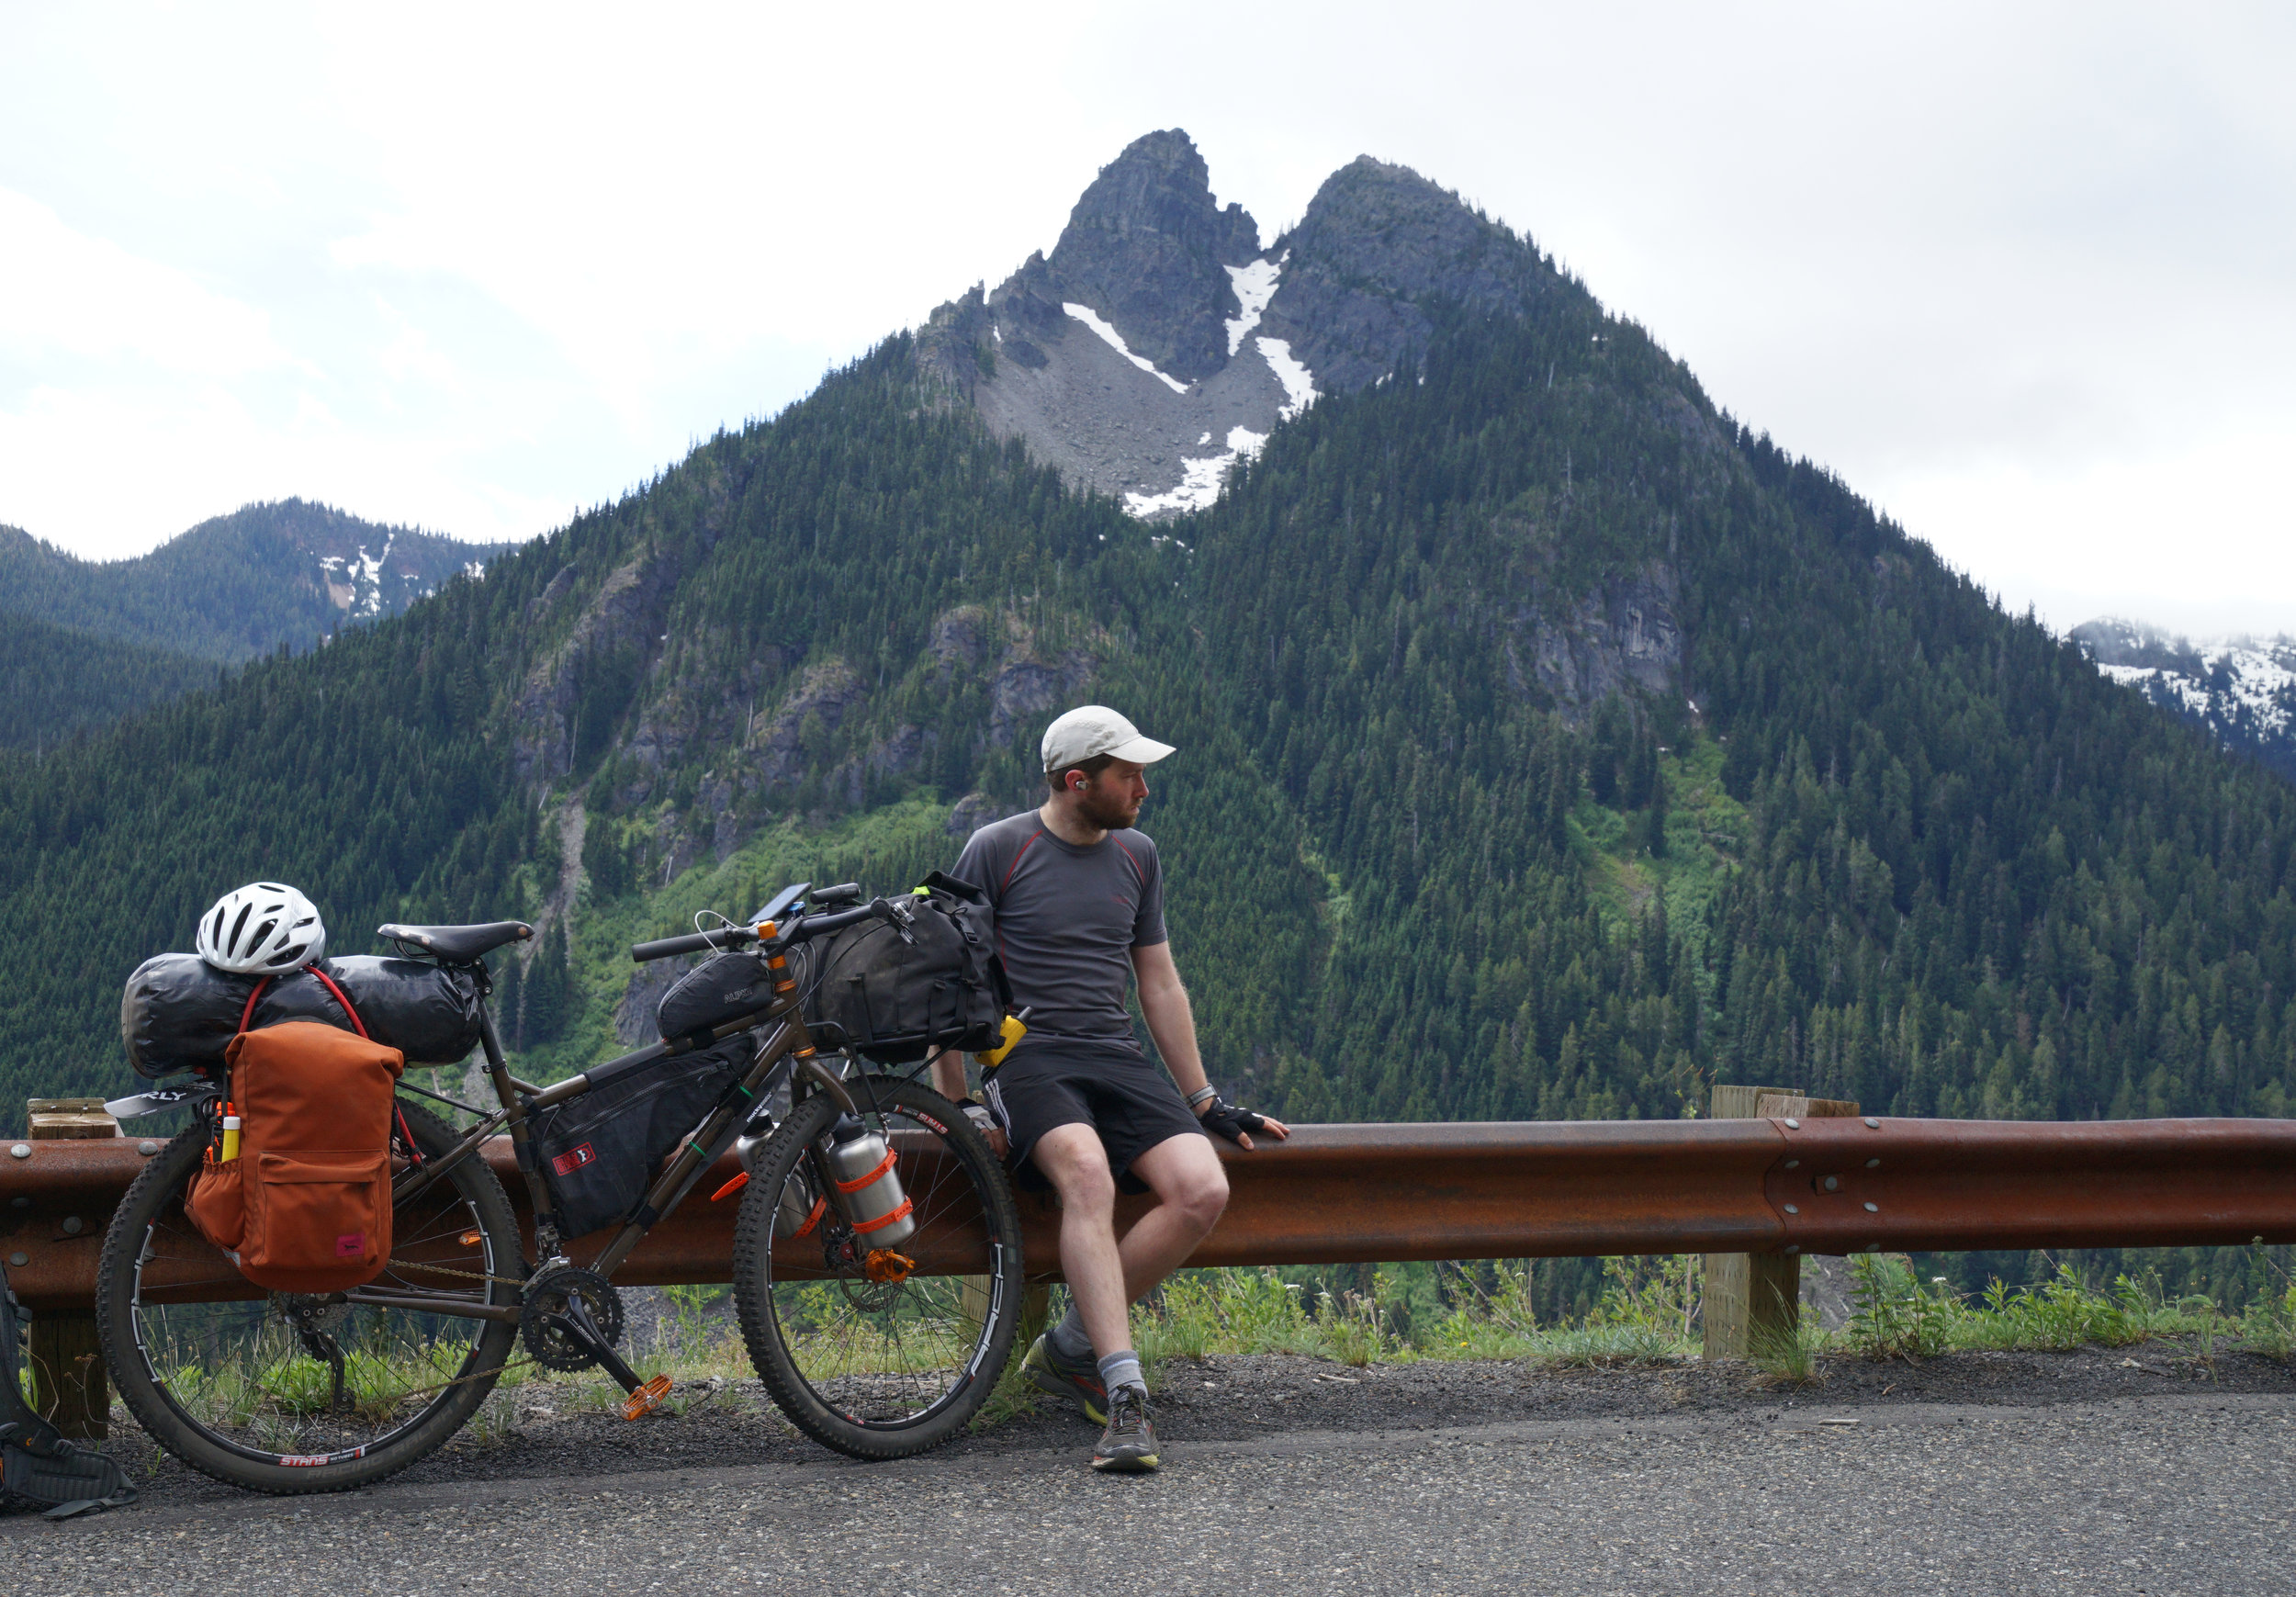 Surly Ogre (that's the bicycle, not me) on the Mather Memorial Parkway, WA, USA.